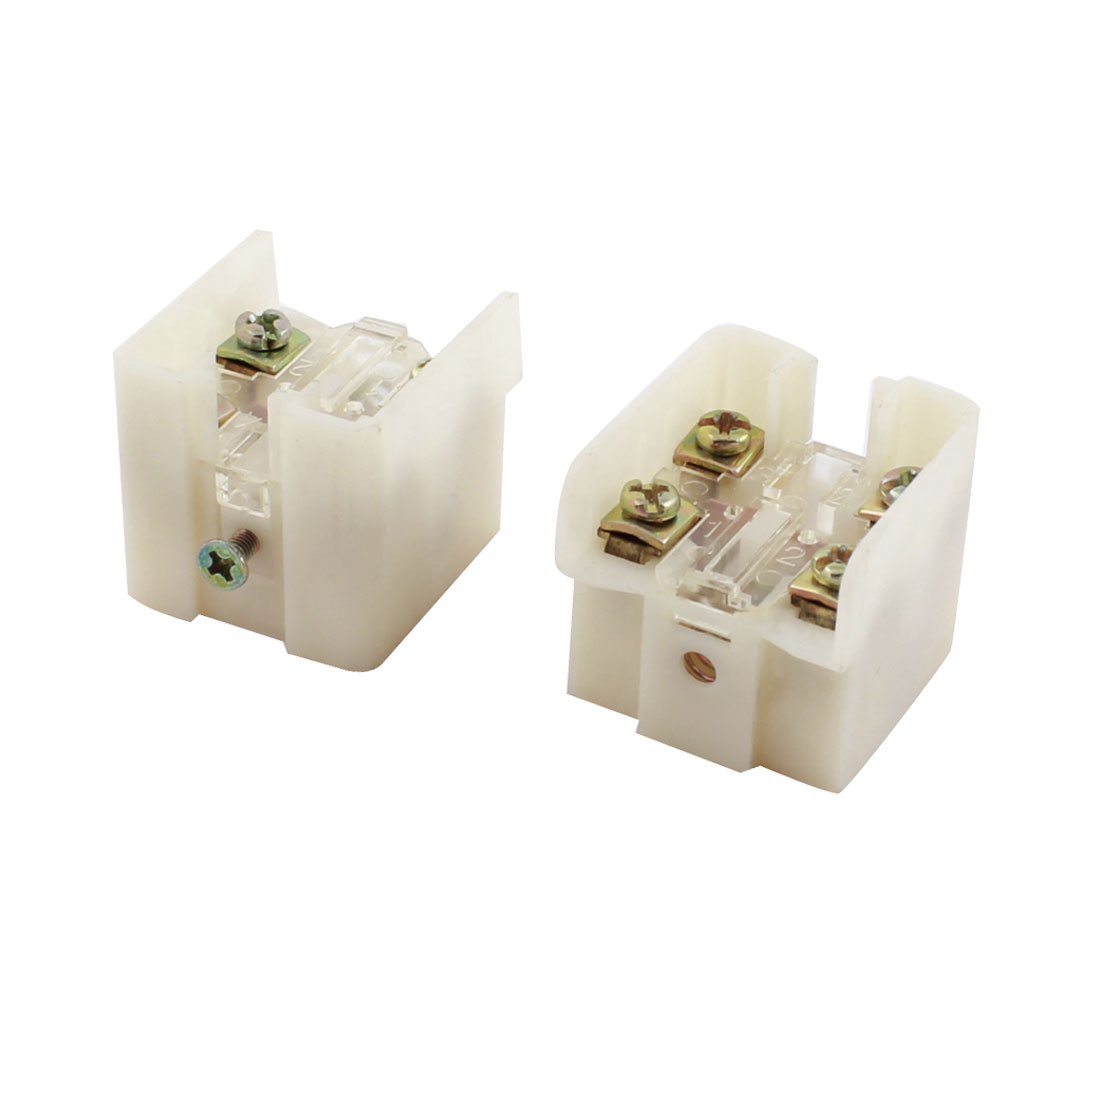 2Pcs AC 220V 5A 4 Screw Terminals DPST Momentary Miniature Micro Switch